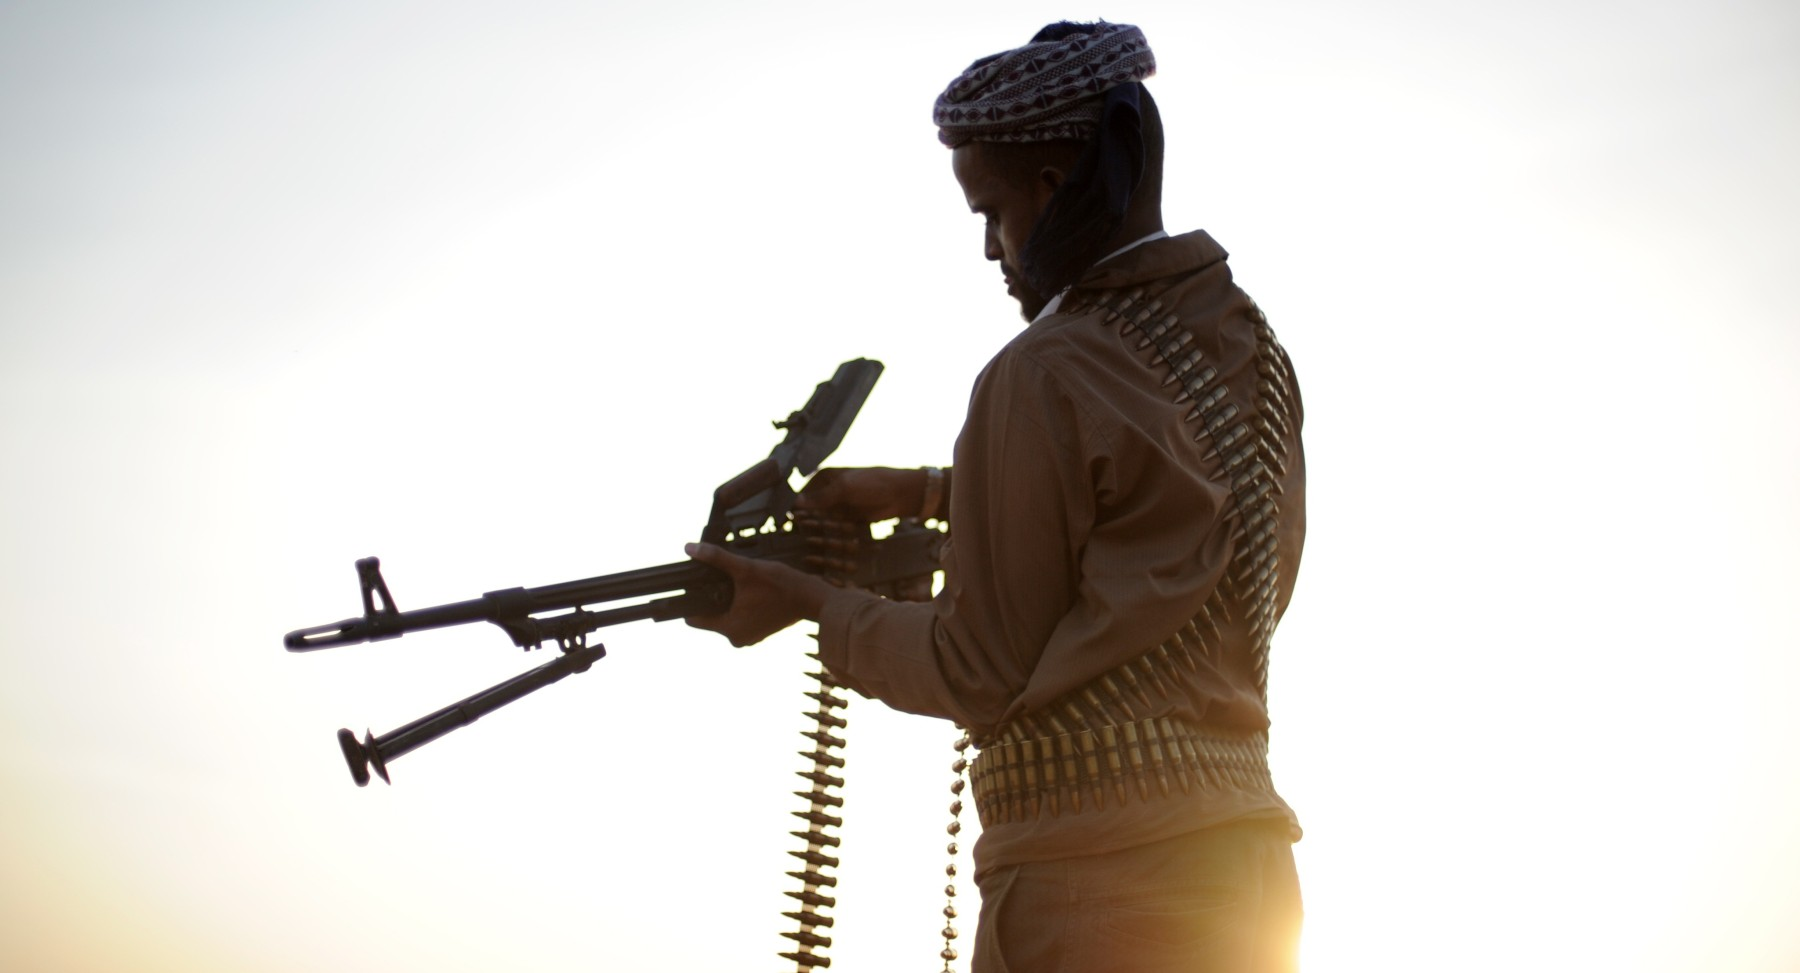 TO GO WITH AFP STORY BY JEAN-MARC MOJON A pirate loads his high caliber weapon in the early morning in the semi-desertic plains near the central Somalia town of Galkayo on August18, 2010. Fighting a losing battle against the sand that has already completely covered the old Italian port, Hobyo's scattering of rundown houses and shacks looks anything but the nerve centre of an activity threatening global shipping. Hobyo pirates have collected millions of dollars in ransoms over the past two years. They even have currency checking and counting machines for the bags of air-dropped cash they receive. AFP PHOTO / ROBERTO SCHMIDT (Photo credit should read ROBERTO SCHMIDT/AFP/Getty Images)